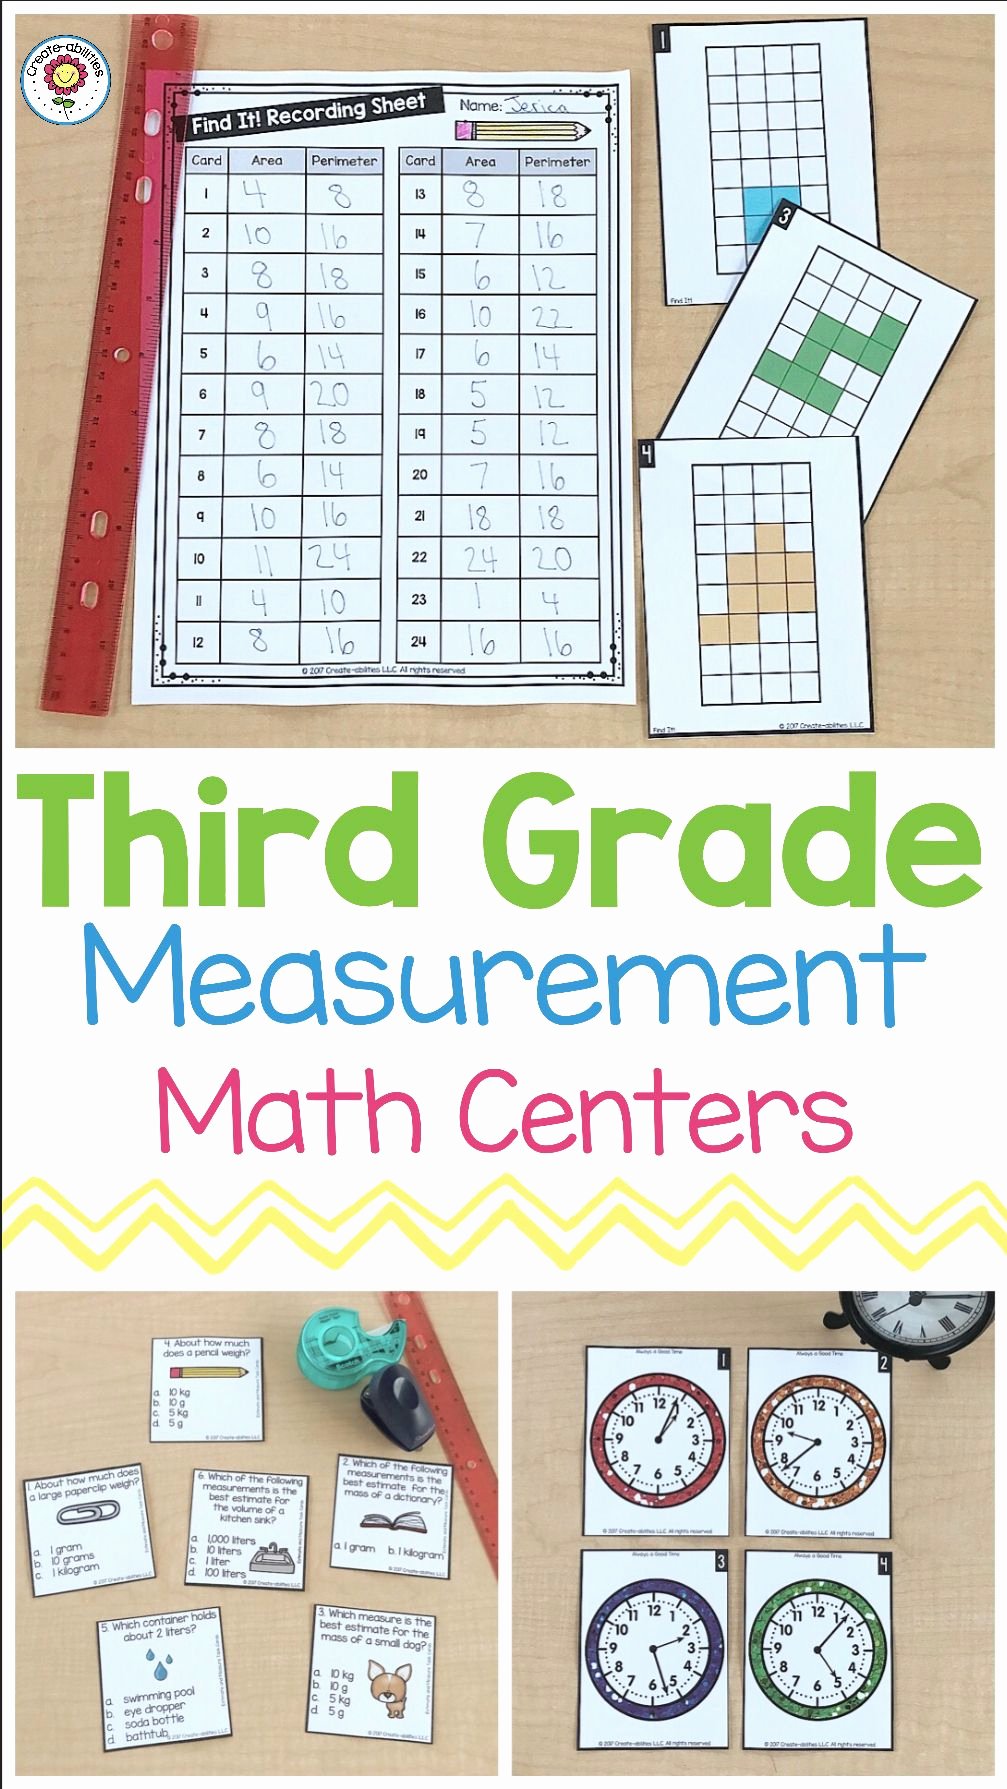 Measurement Worksheets 3rd Grade Beautiful 3rd Grade Measurement Math Centers with Images